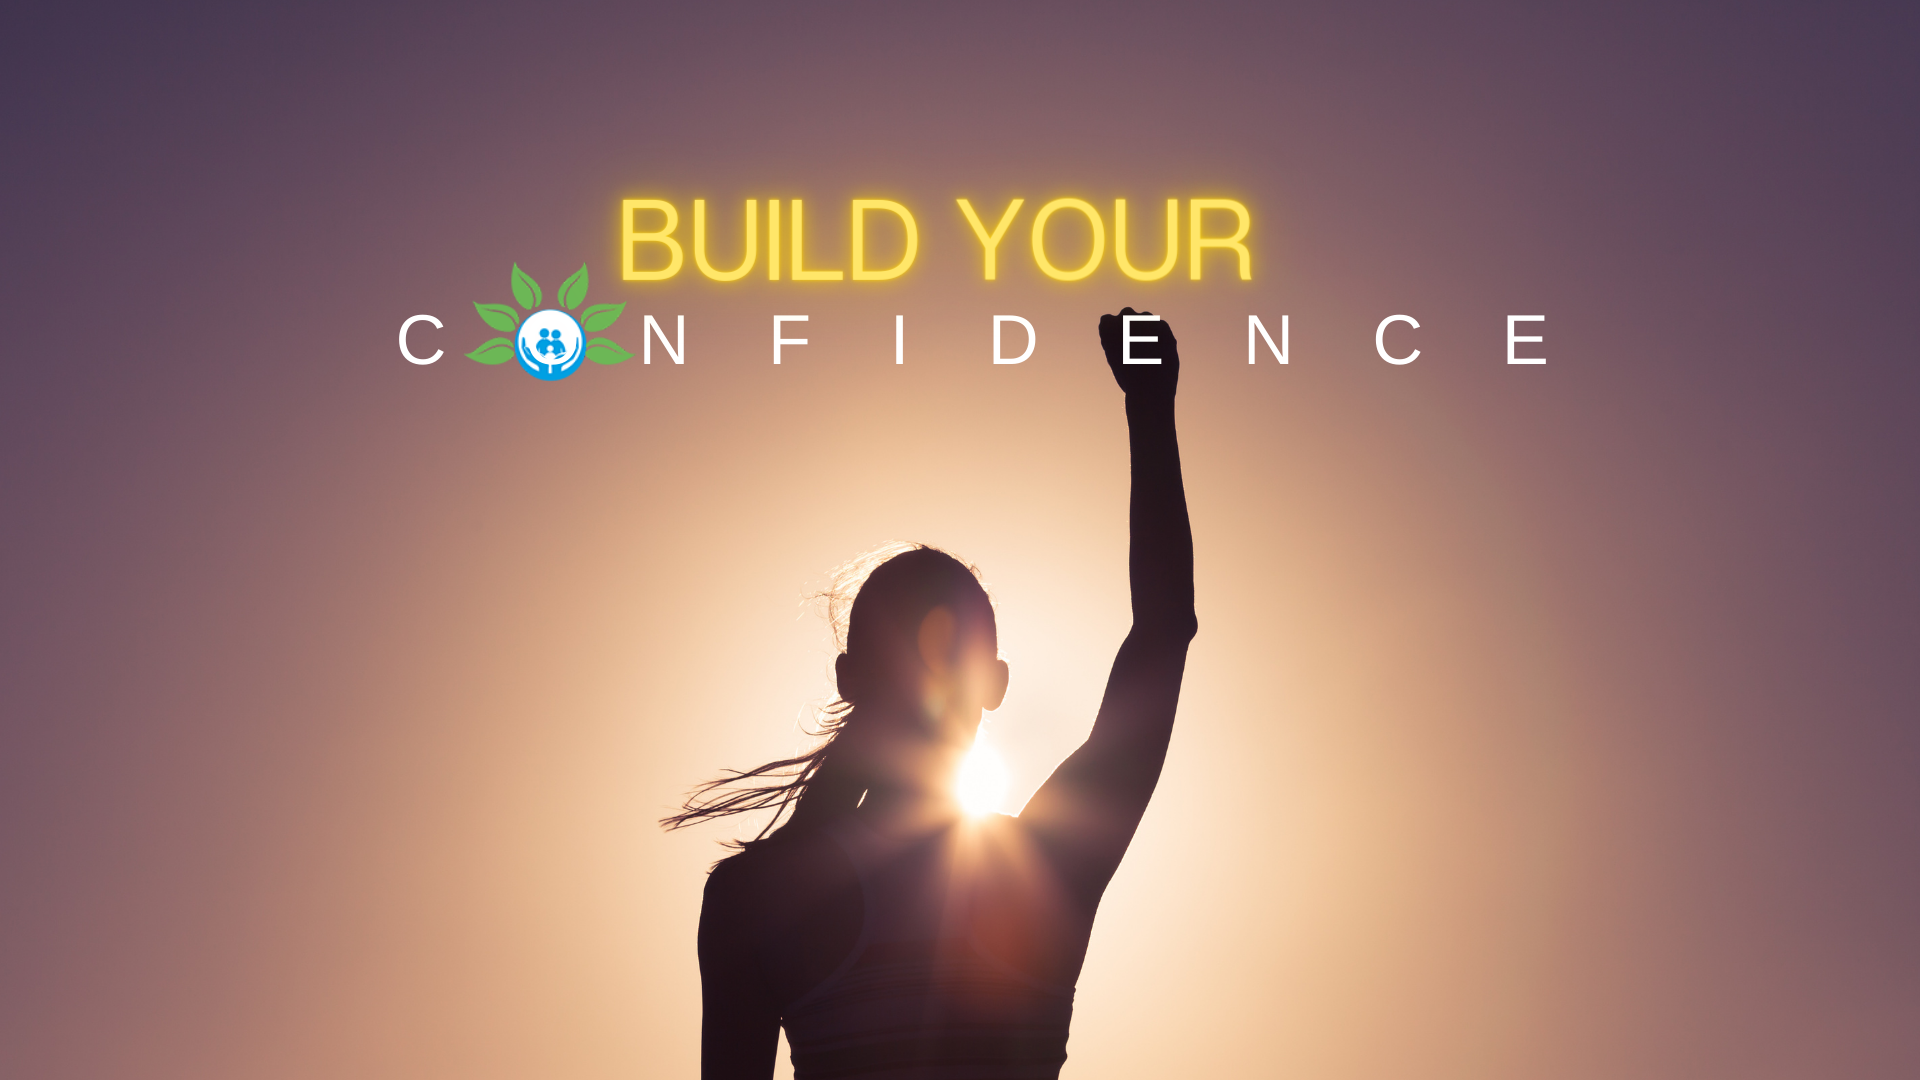 Meditation path to building your confidence